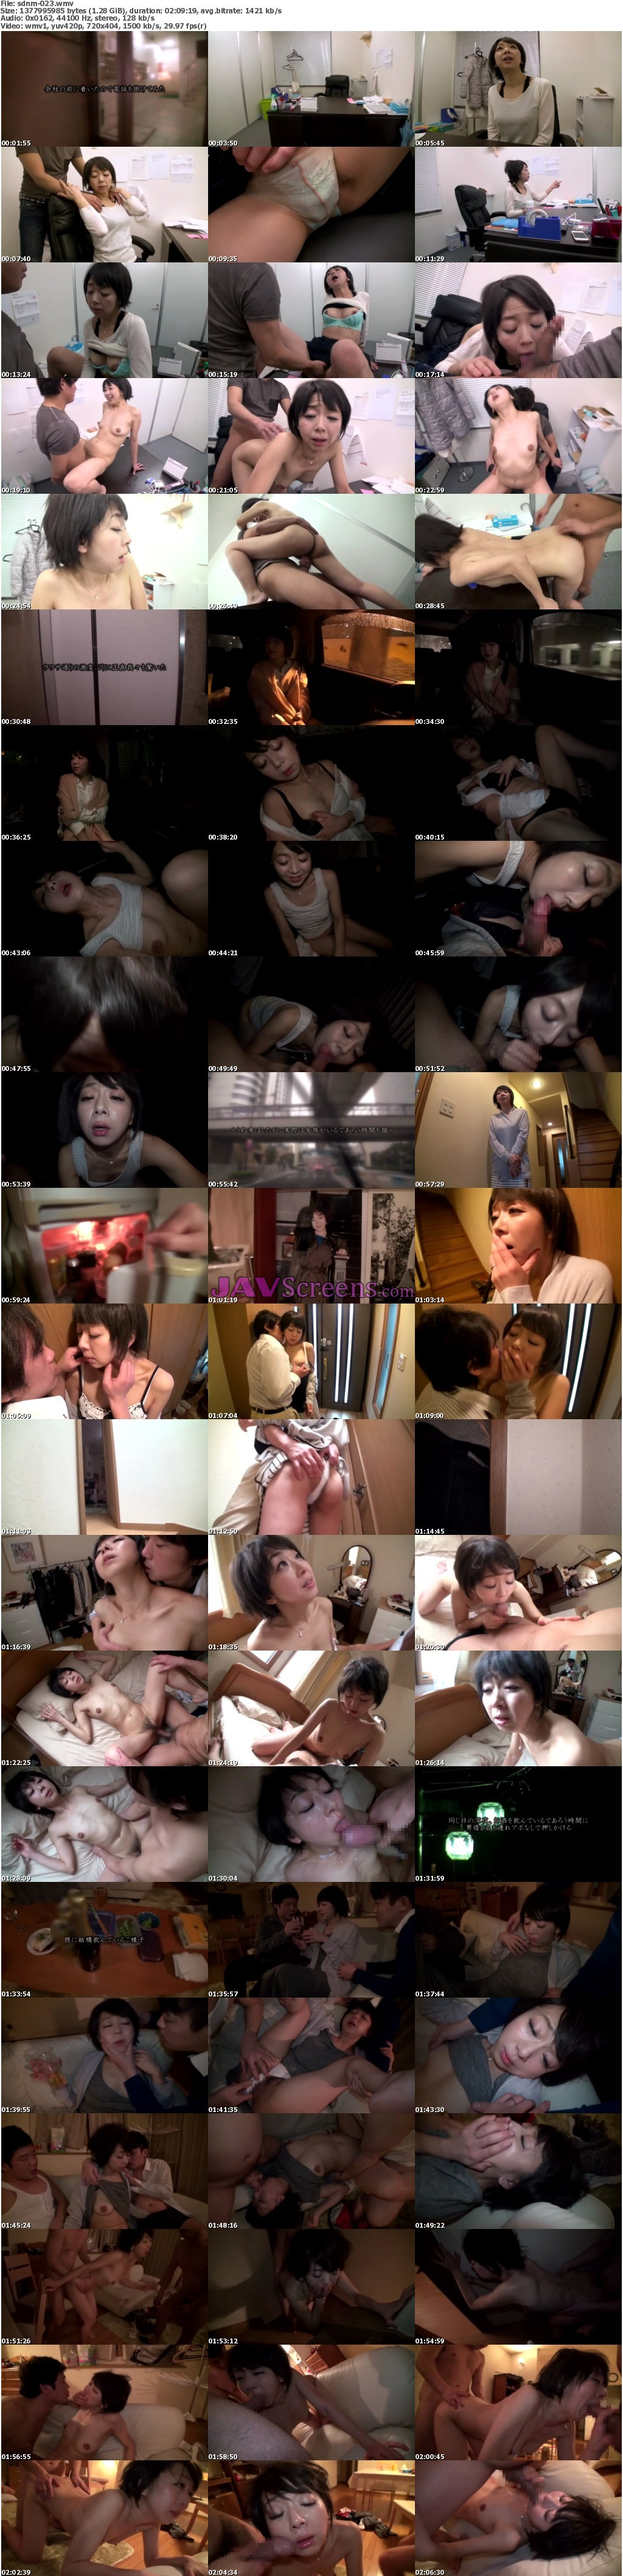 SDNM-023.jpg - JAV Screenshot